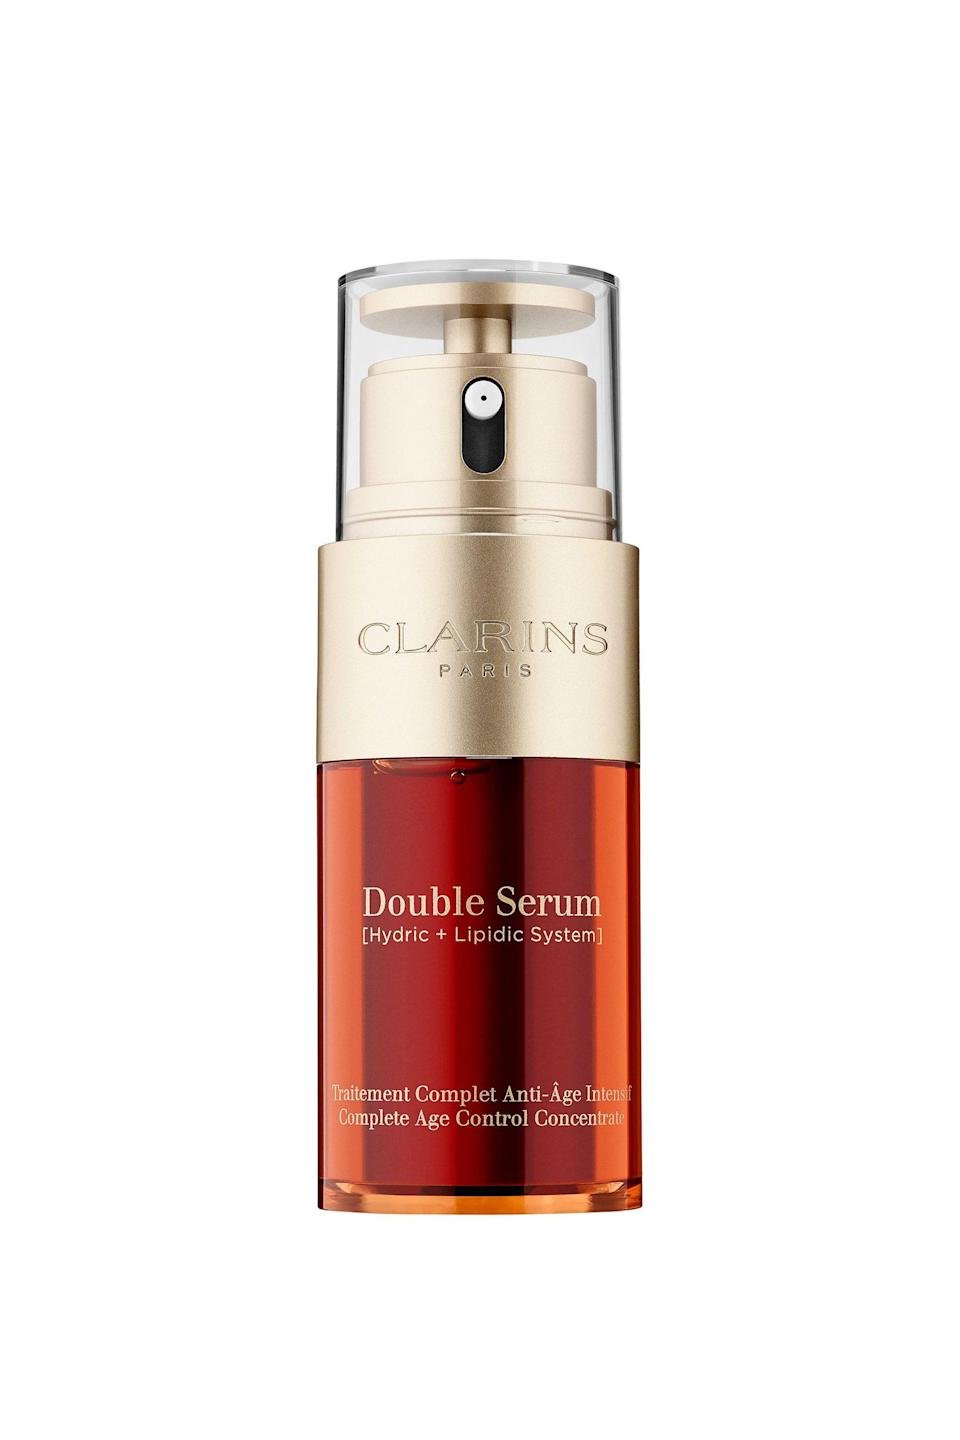 """<p><strong>Clarins</strong></p><p>saksfifthavenue.com</p><p><strong>$89.00</strong></p><p><a href=""""https://go.redirectingat.com?id=74968X1596630&url=https%3A%2F%2Fwww.saksfifthavenue.com%2Fsaks%2Fproduct%2F0400095657393&sref=https%3A%2F%2Fwww.elle.com%2Fbeauty%2Fmakeup-skin-care%2Ftips%2Fg8091%2Fface-serum%2F"""" rel=""""nofollow noopener"""" target=""""_blank"""" data-ylk=""""slk:Shop Now"""" class=""""link rapid-noclick-resp"""">Shop Now</a></p><p>Some of the best plant-based extracts are water-soluble. Others can only thrive in oil-based solutions. The dual-chambers in this handy vial makes space for both types—20 botanical actives, to be exact, including turmeric, oats, and kiwi. </p><p>If your skin is extra dry, go for a power shot. On oilier days, dial the adjustable nozzle back to a smaller dosage.</p>"""